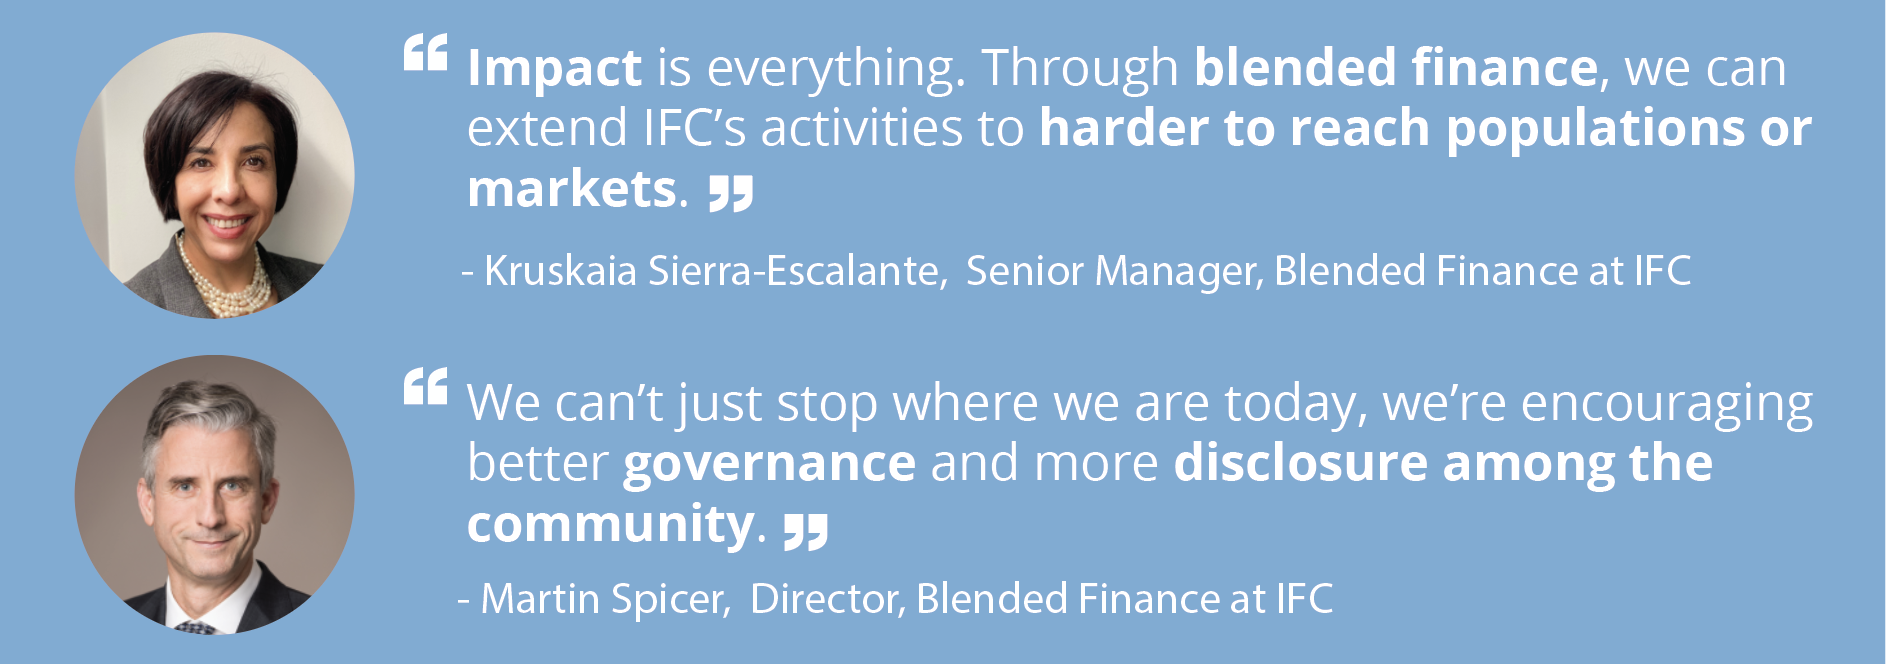 Member spotlight with Martin Spicer and Kruskaia Sierra-Escalante of IFC